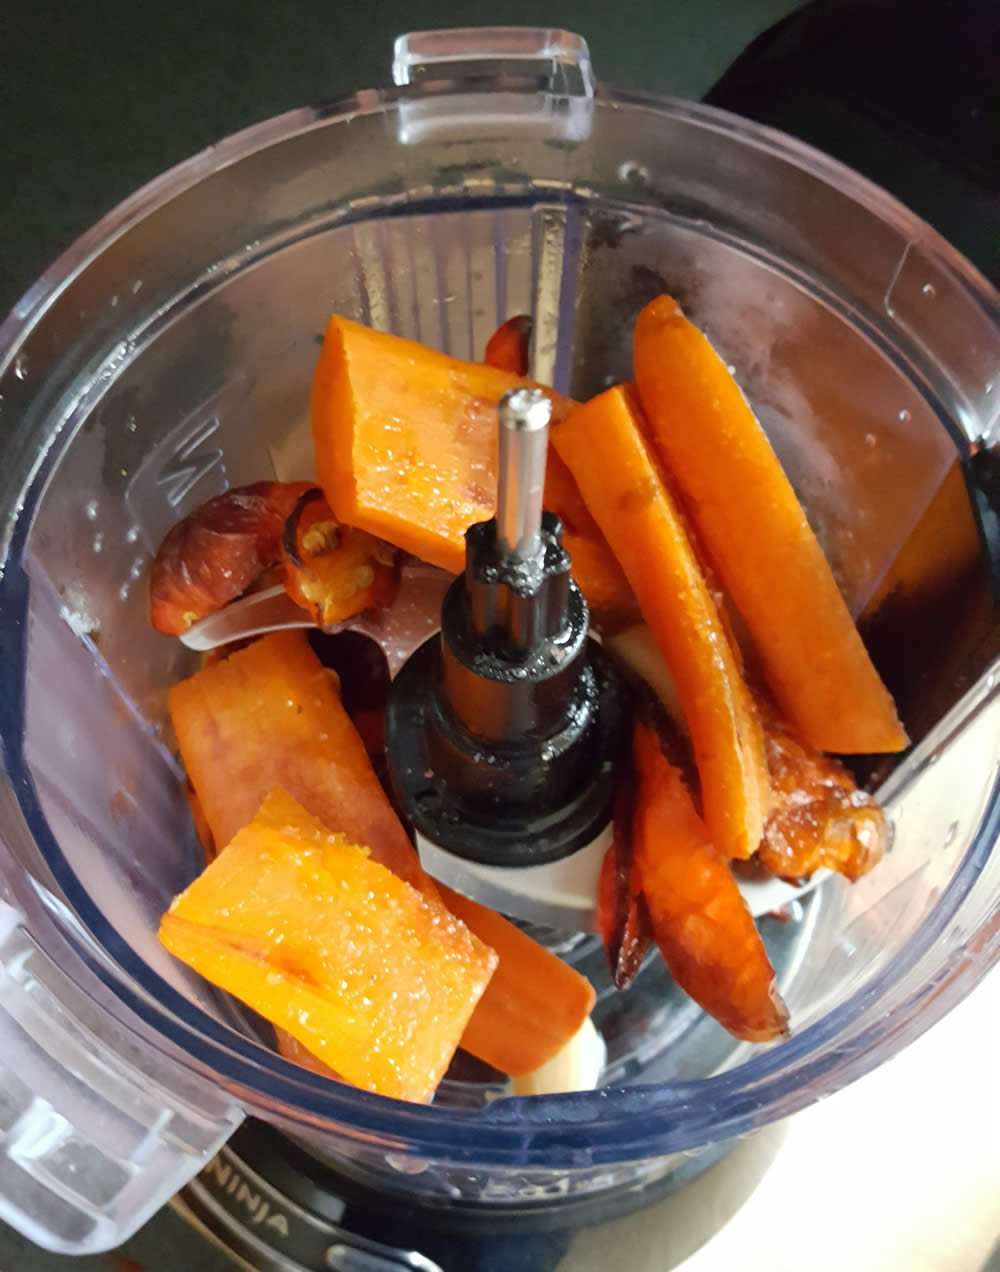 Roasted carrots, garlic and ghost peppers, ready to make sauce